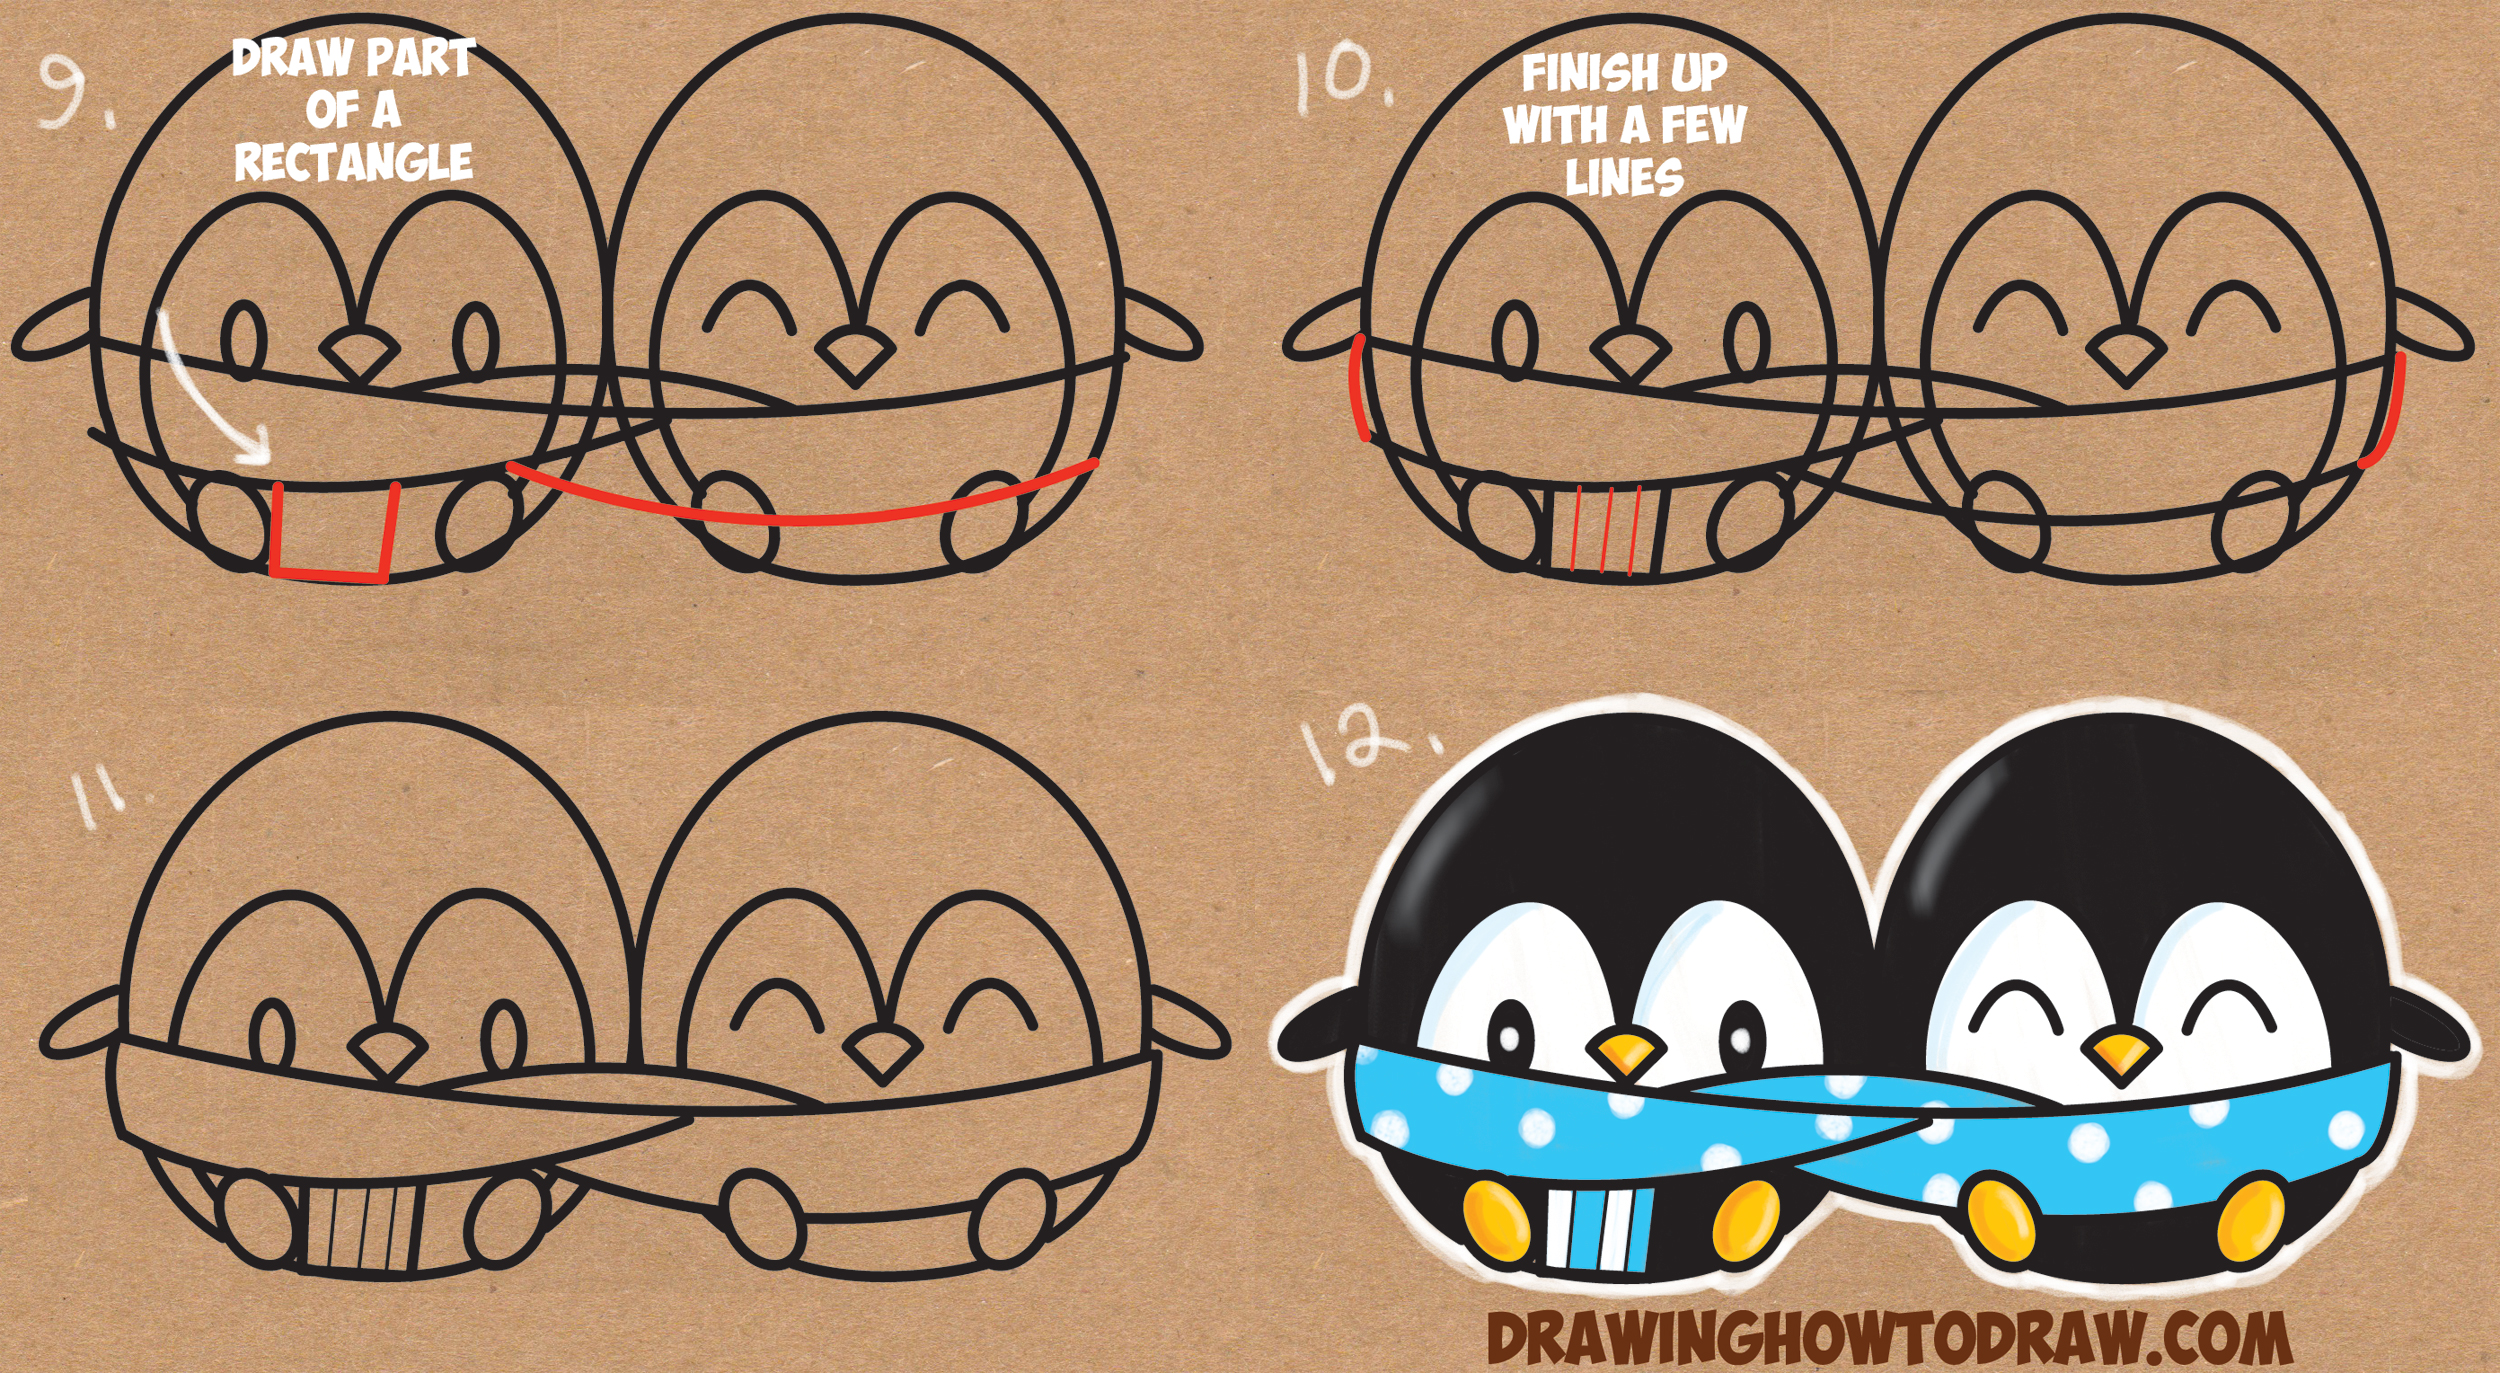 Cute penguins cute mighty pictures - Learn How To Draw Cute Kawaii Cartoon Penguins In A Scarf Snuggling In The Winter